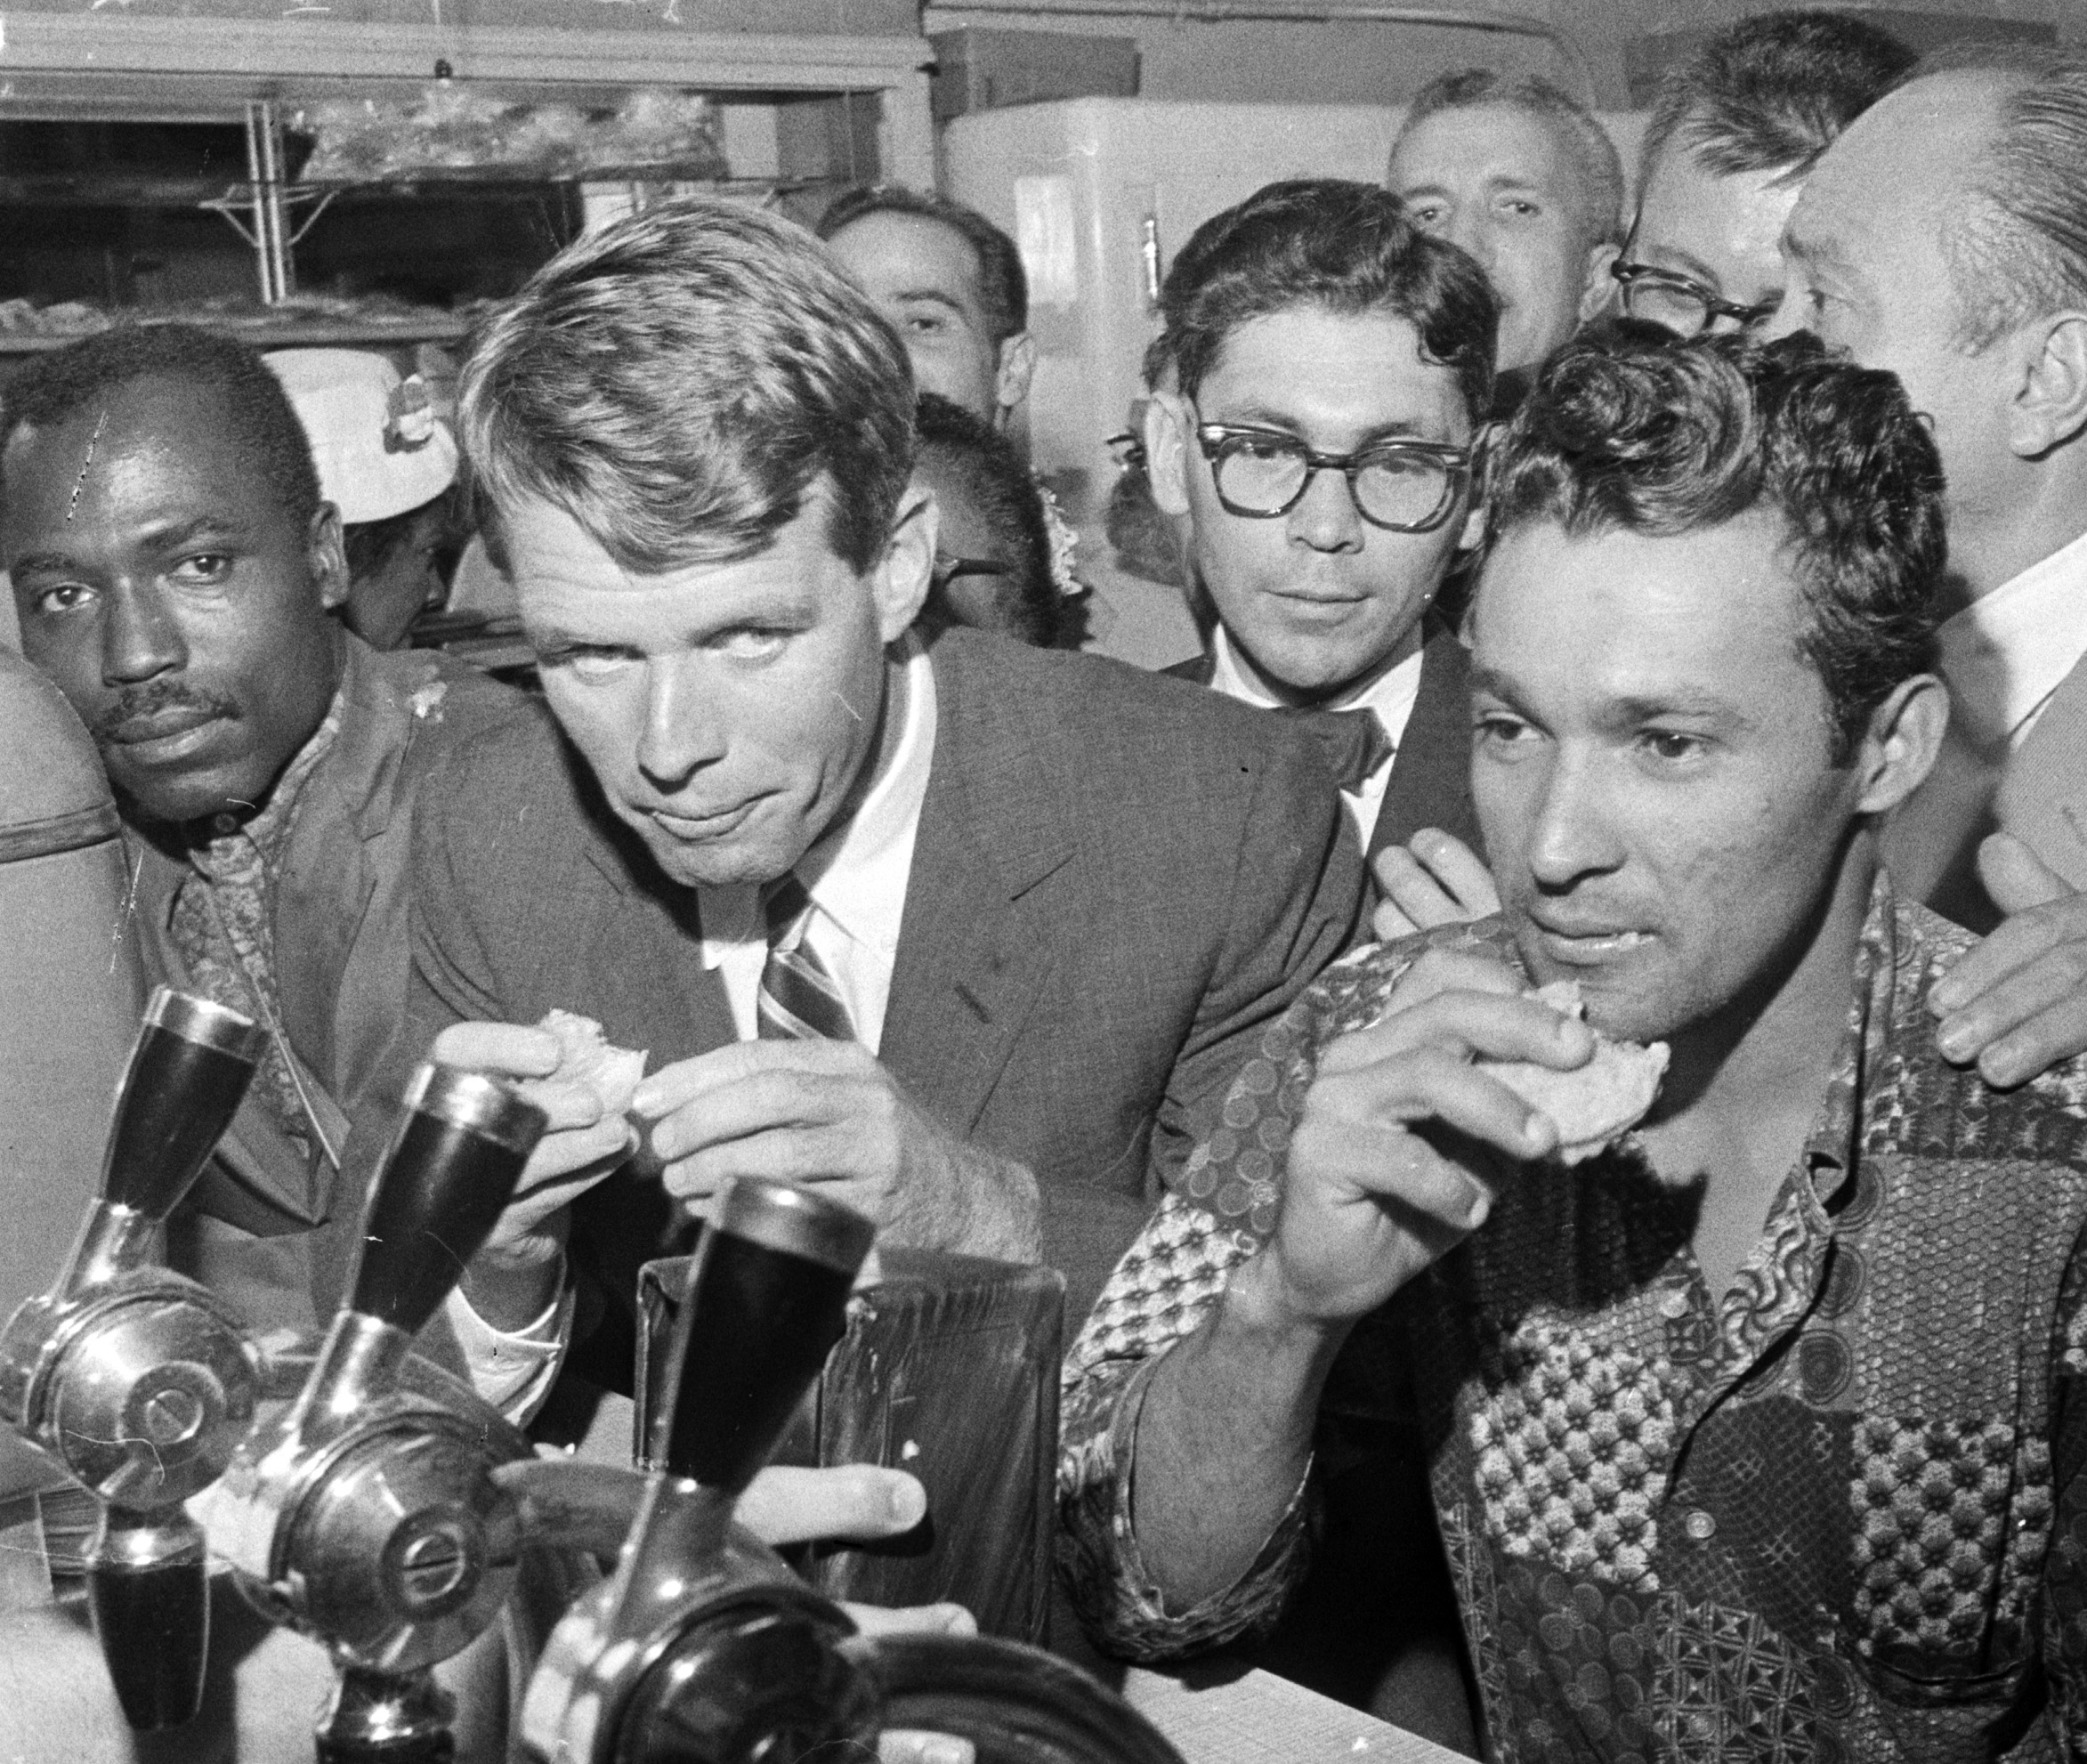 Robert Kennedy, managing his brother's presidential campaign, stops for a snack at a restaurant in Spanish Harlem. August 25, 1960.